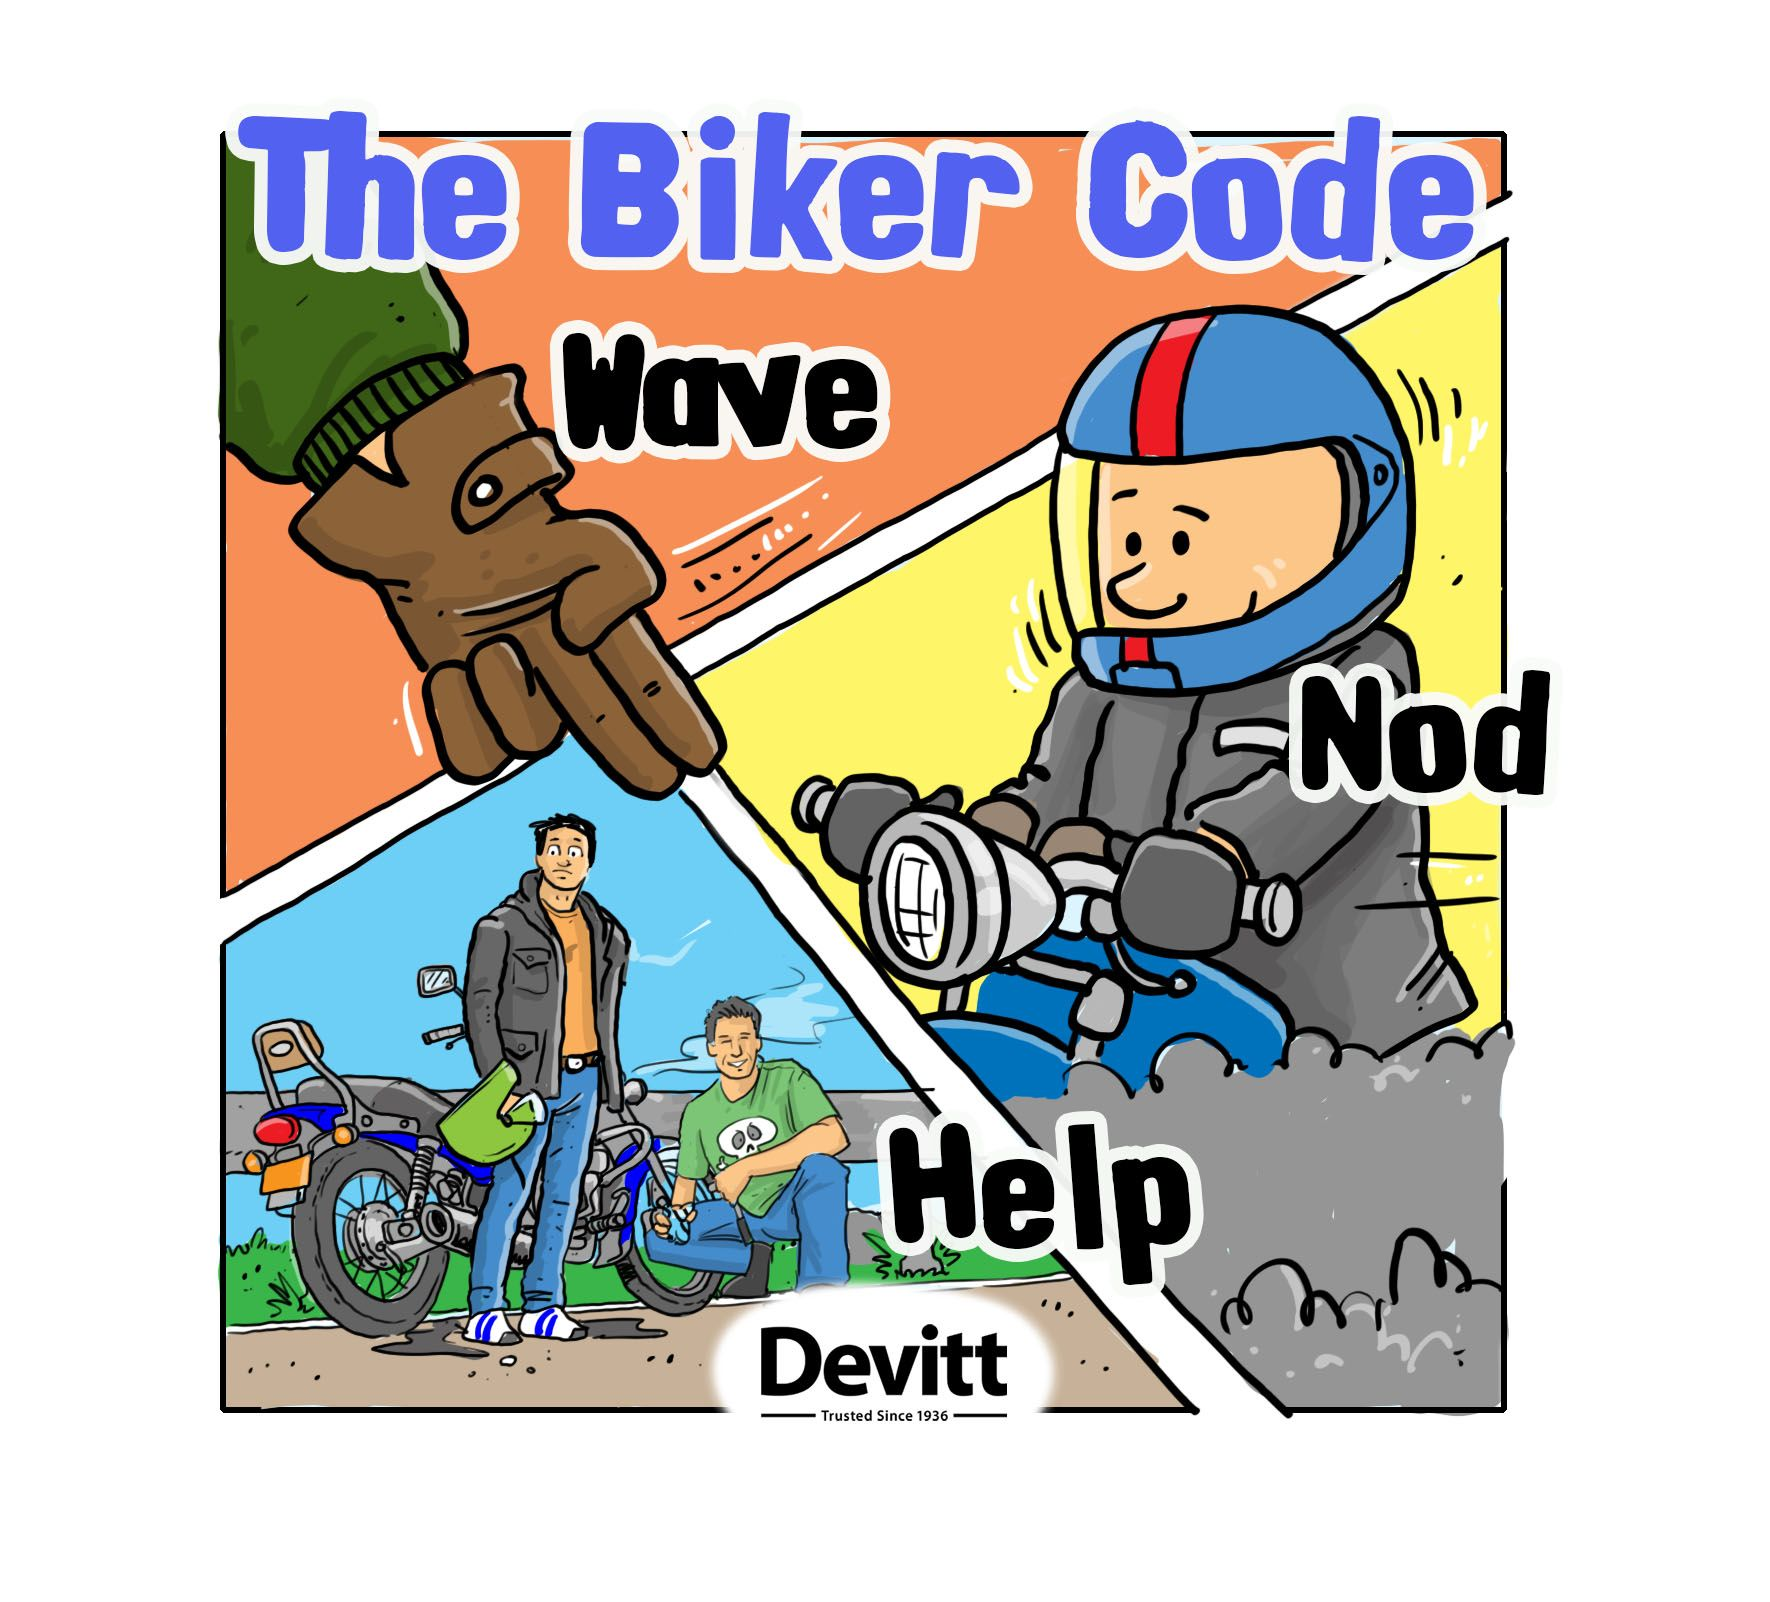 Exceptionnel Donu0027t Forget The Biker Code #wave #nod #help #respect